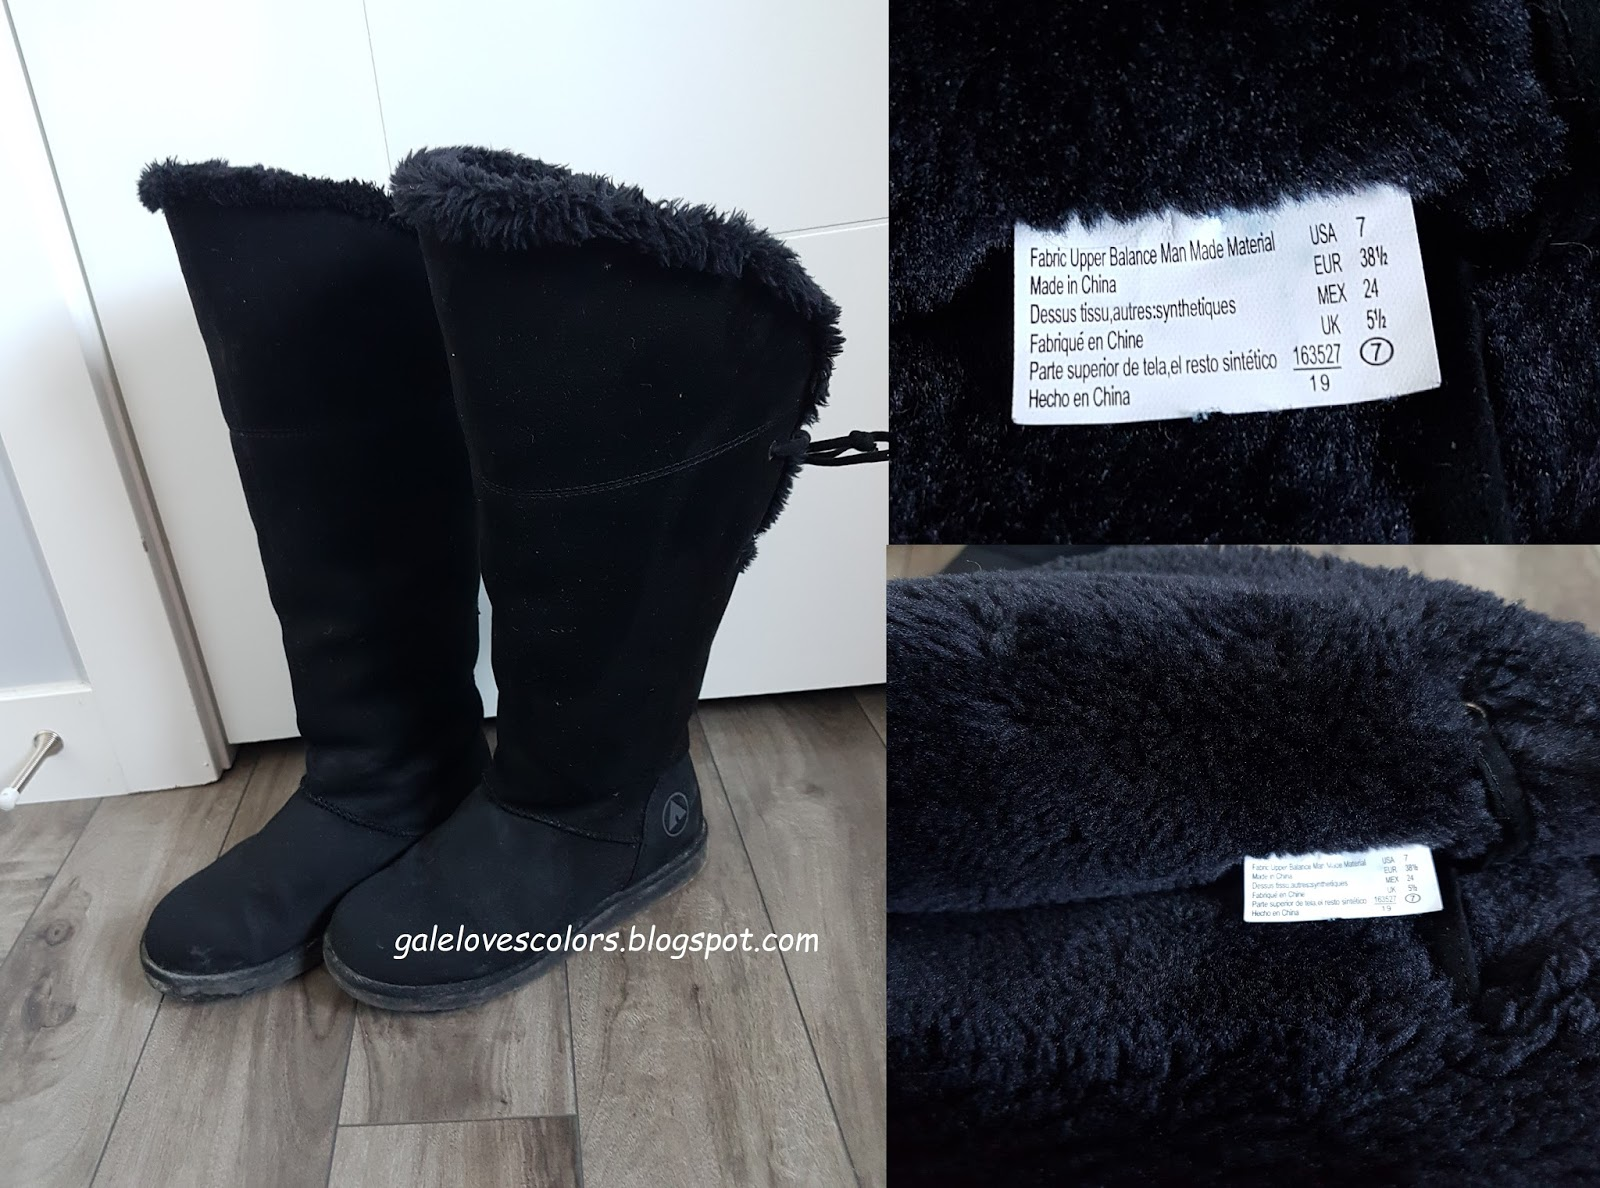 2bf12d4d My Airwalk knee high boots is the cruelty-free version of UGGs. I really  love the style of UGG boots, they are also really comfortable and warm but  they ...